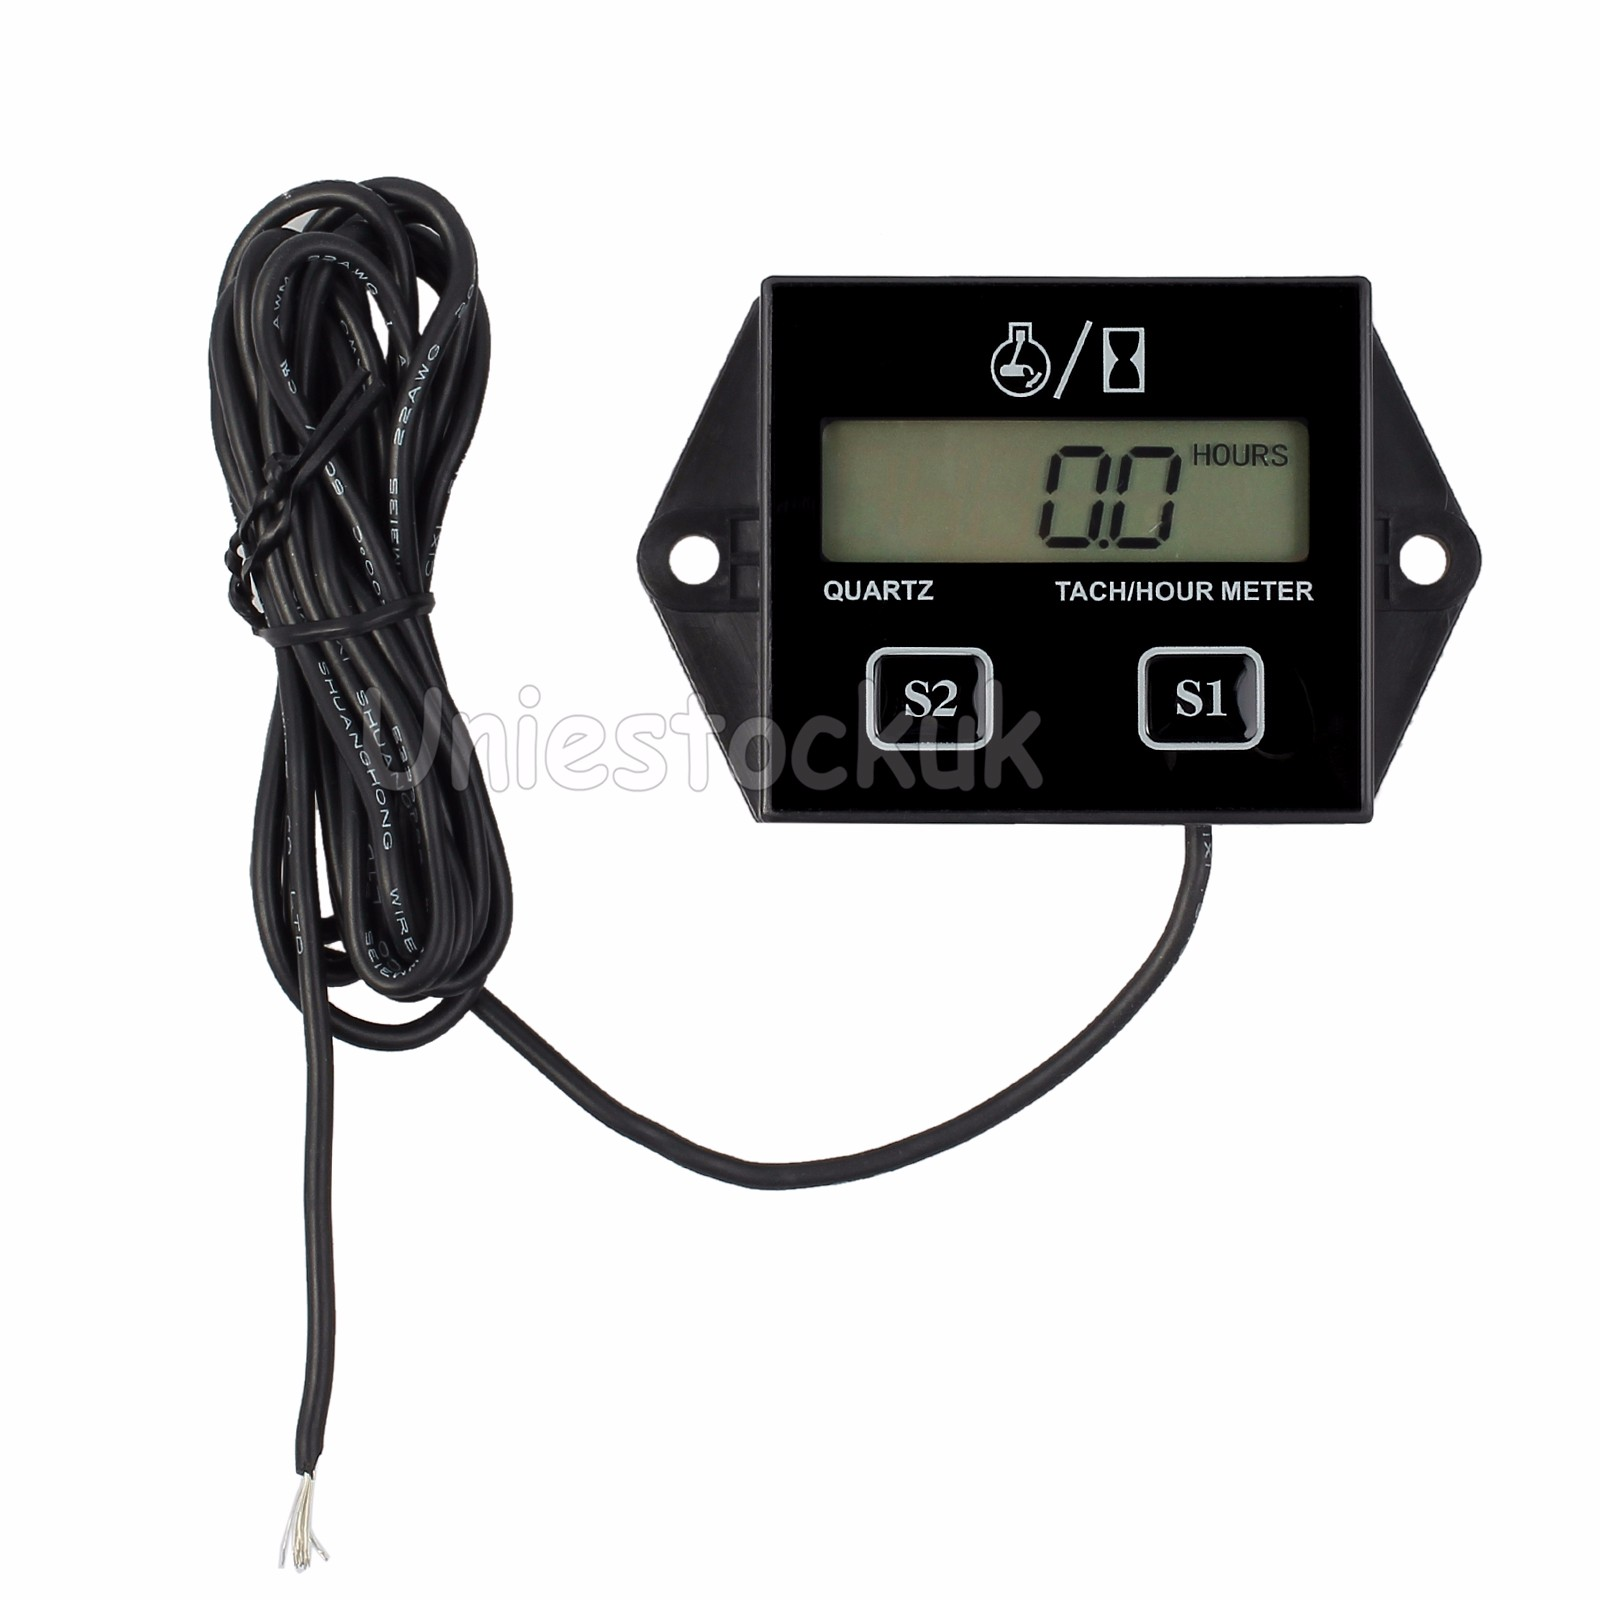 motorcycle bike digital tach hour meter tachometer gauge. Black Bedroom Furniture Sets. Home Design Ideas